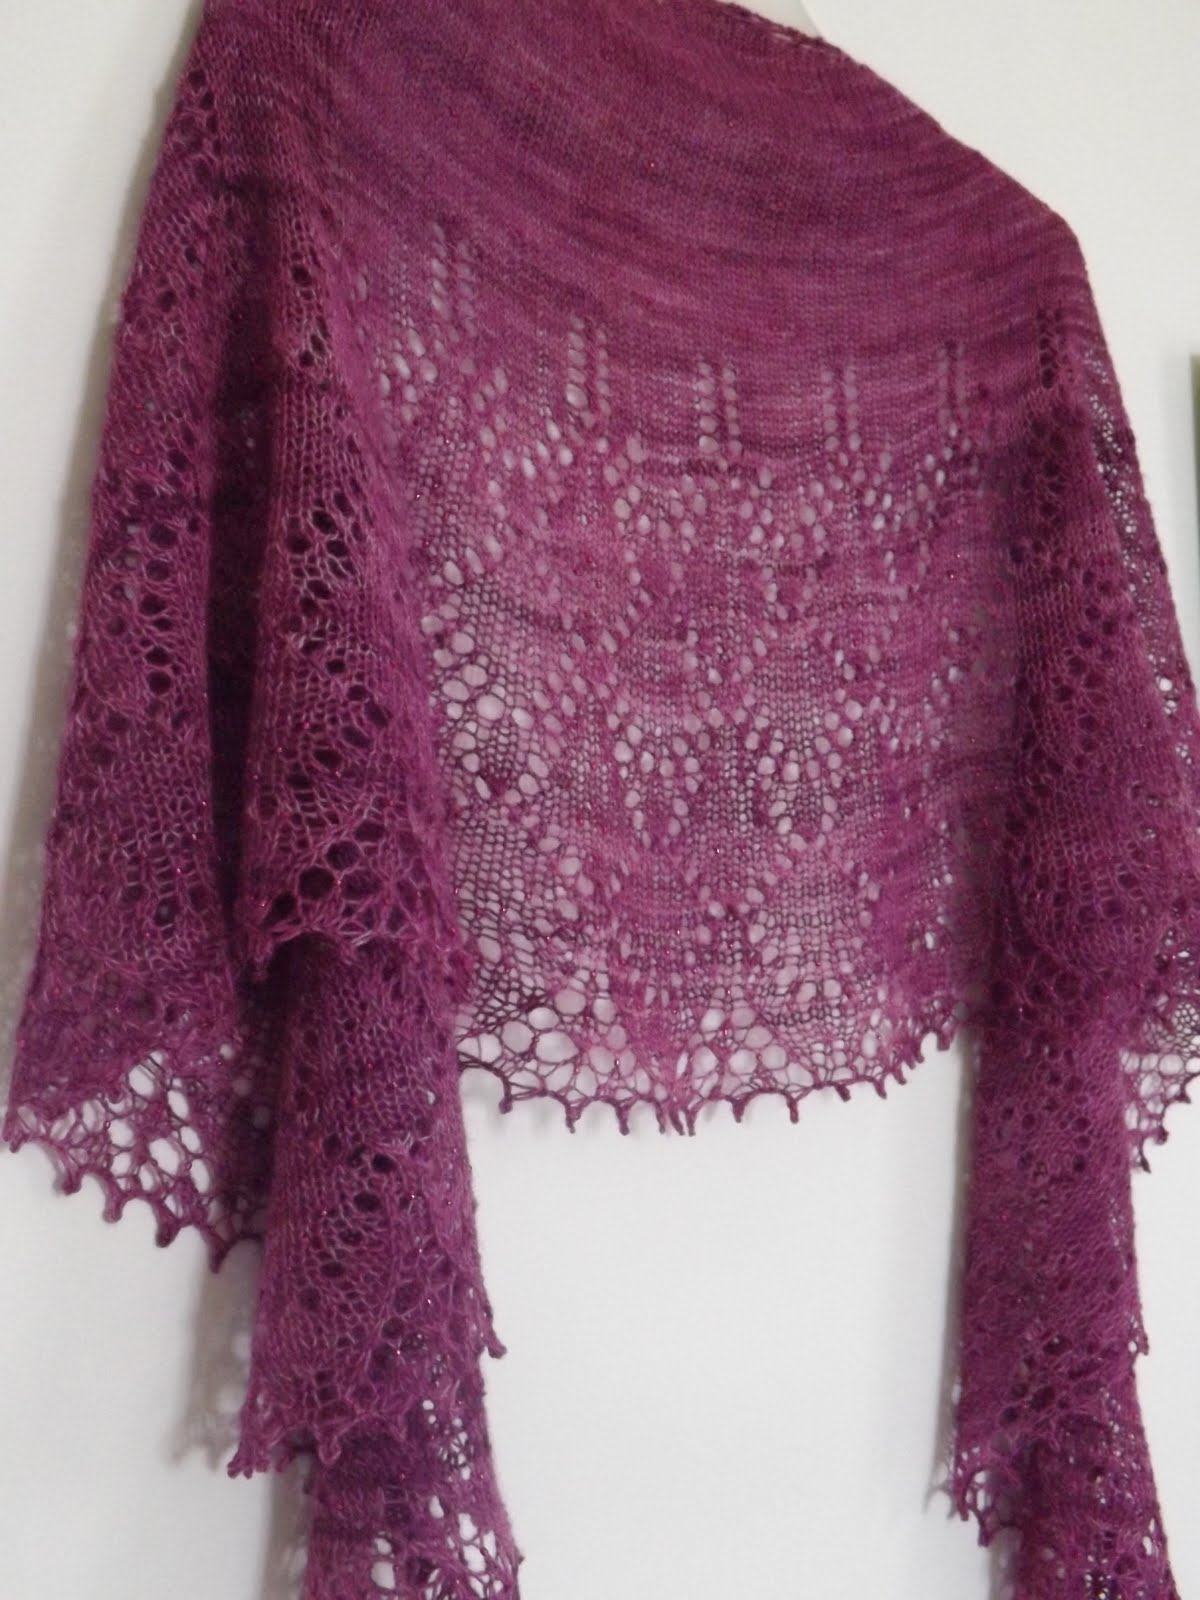 Out of darkness- Boo Knits